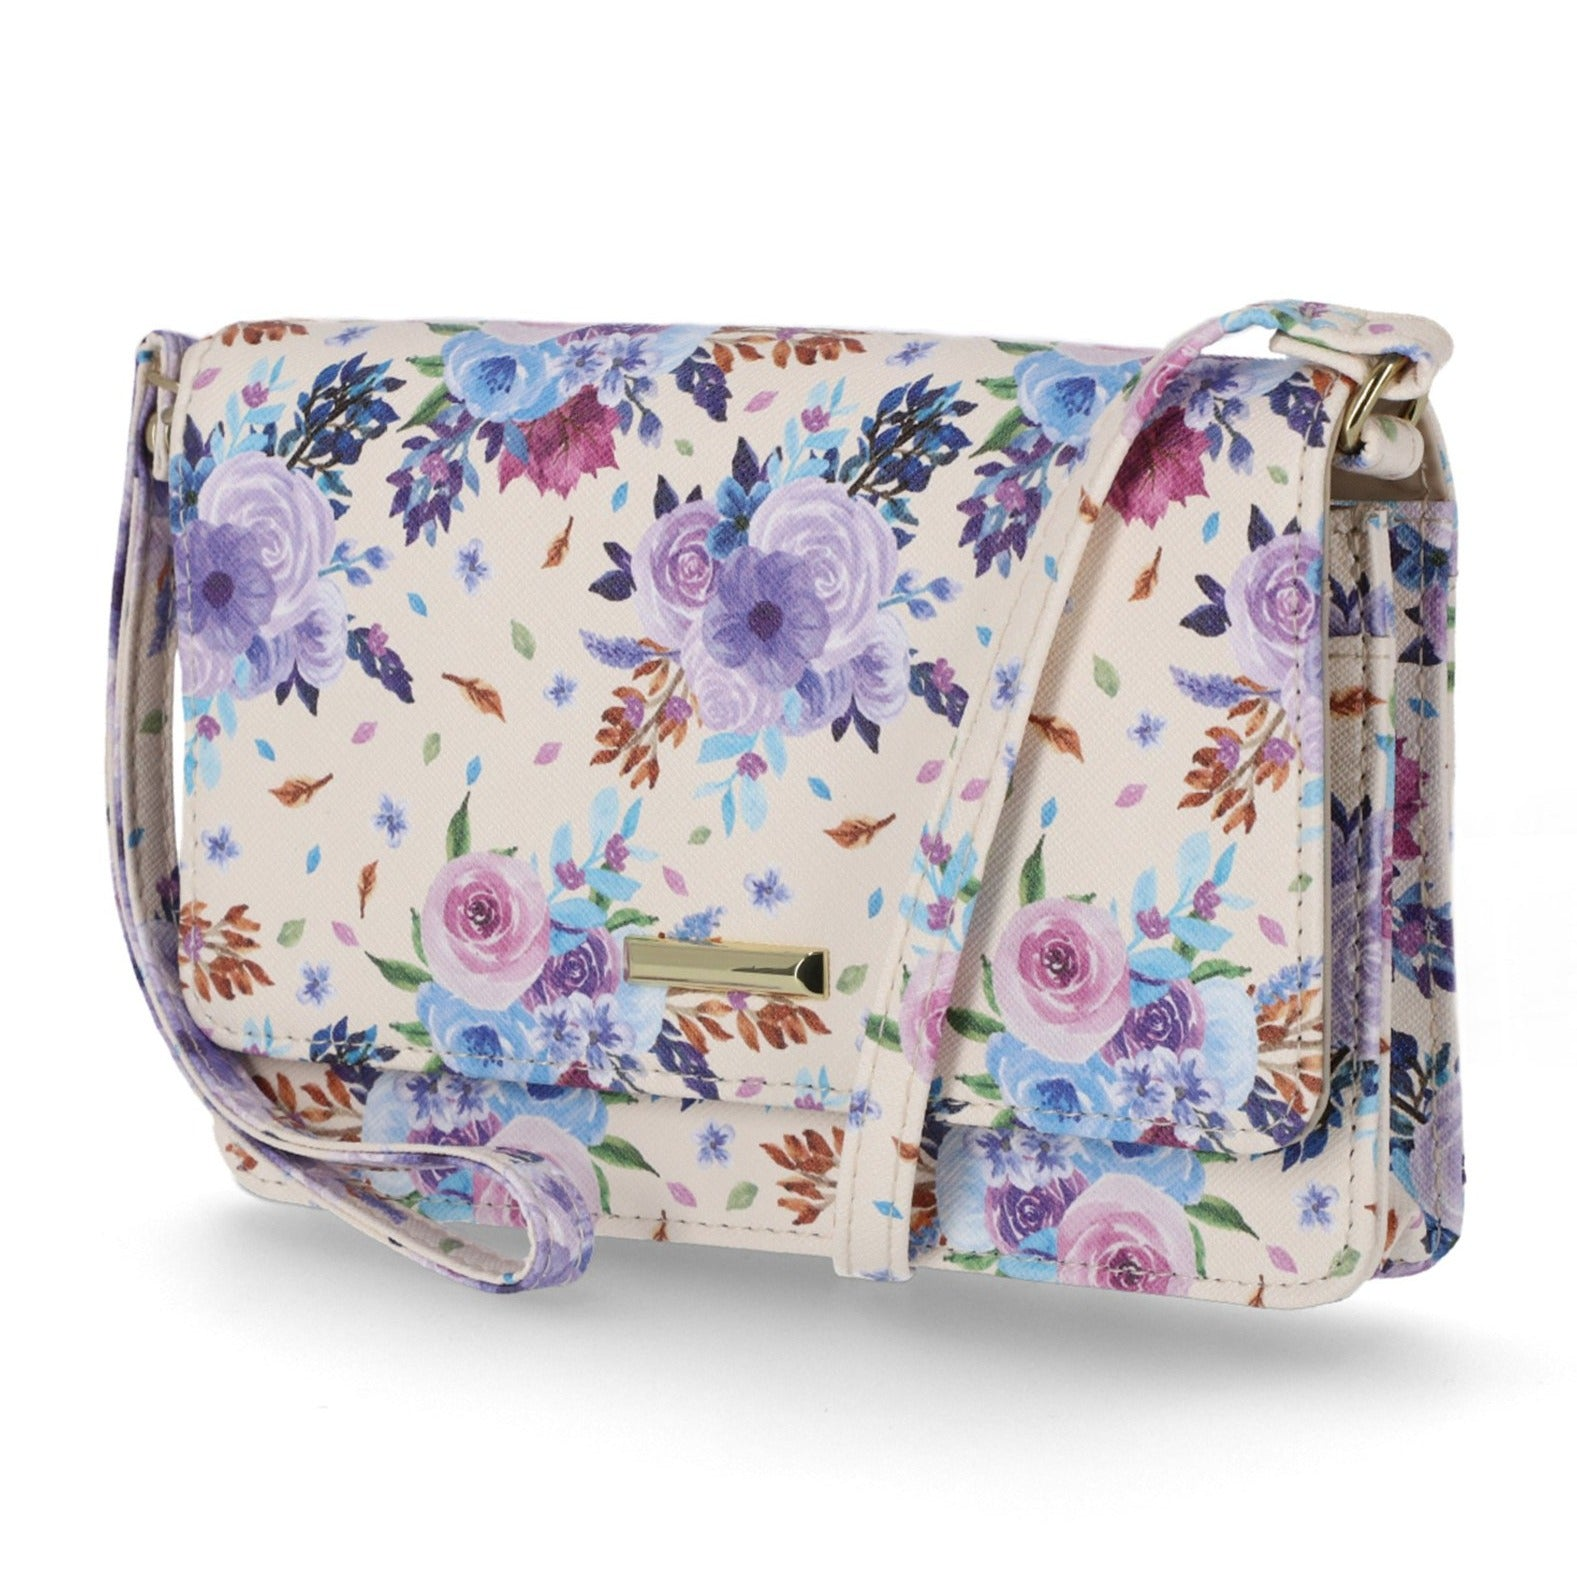 Mundi Wallets - Kimberly Crossbody Bag - Clutch Wallet - Organizer Wallet - Women's Crossbody Bags and Wallets - RFID Protected - Multiple Compartments and Pockets - Small Crossbody Bag - Floral